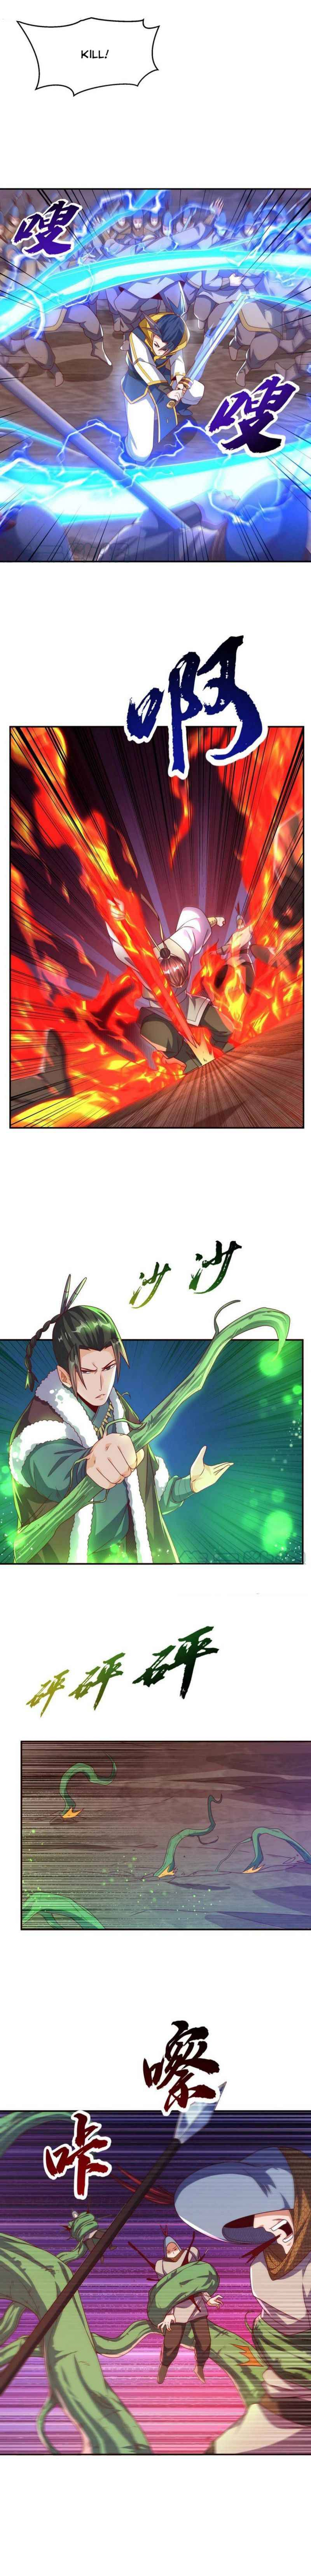 Martial inverse - chapter 181 - #3